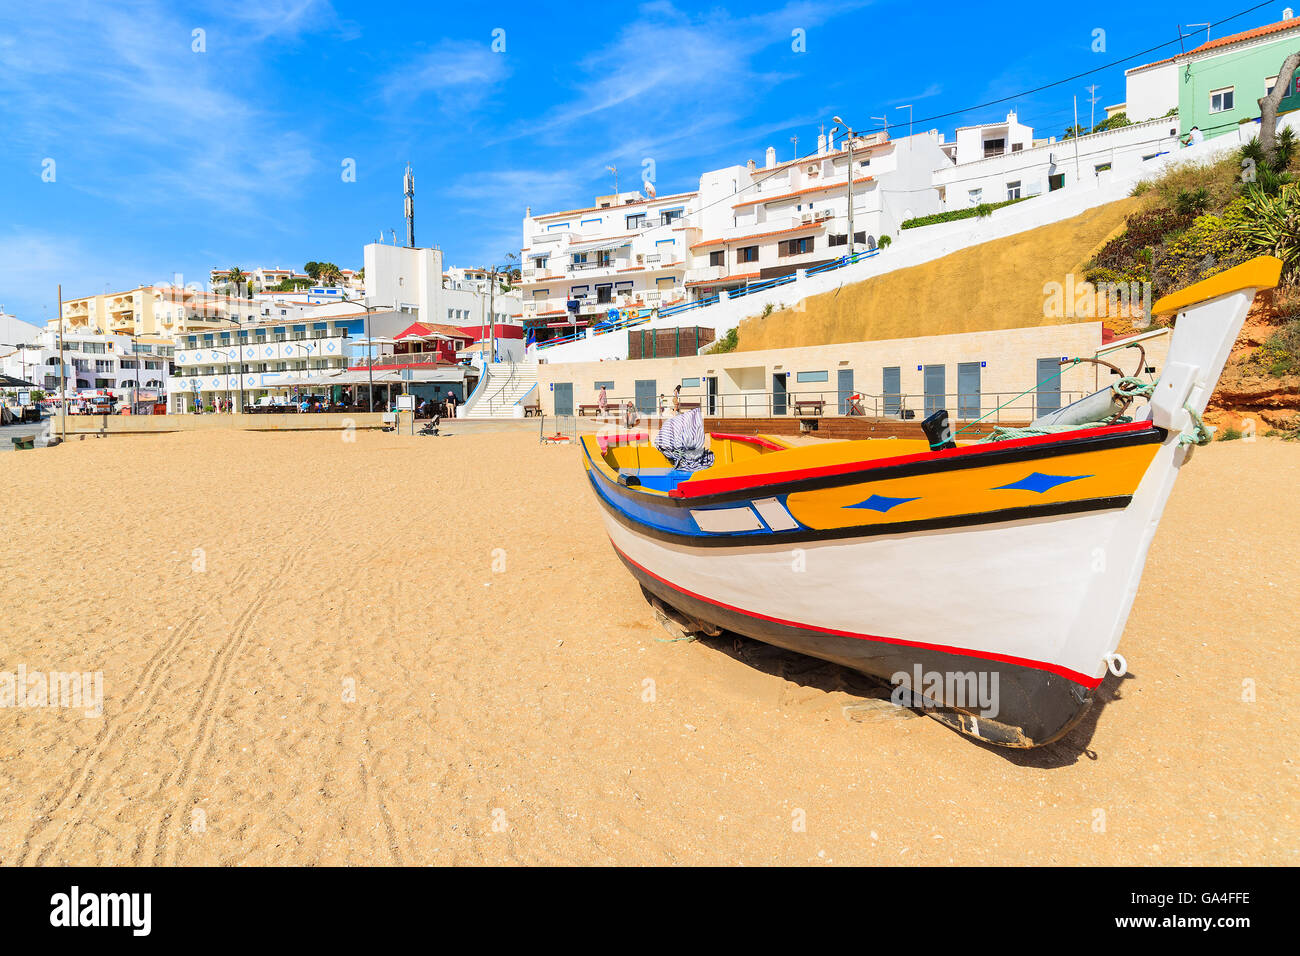 Typical colourful fishing boat on beach in Carvoeiro ...